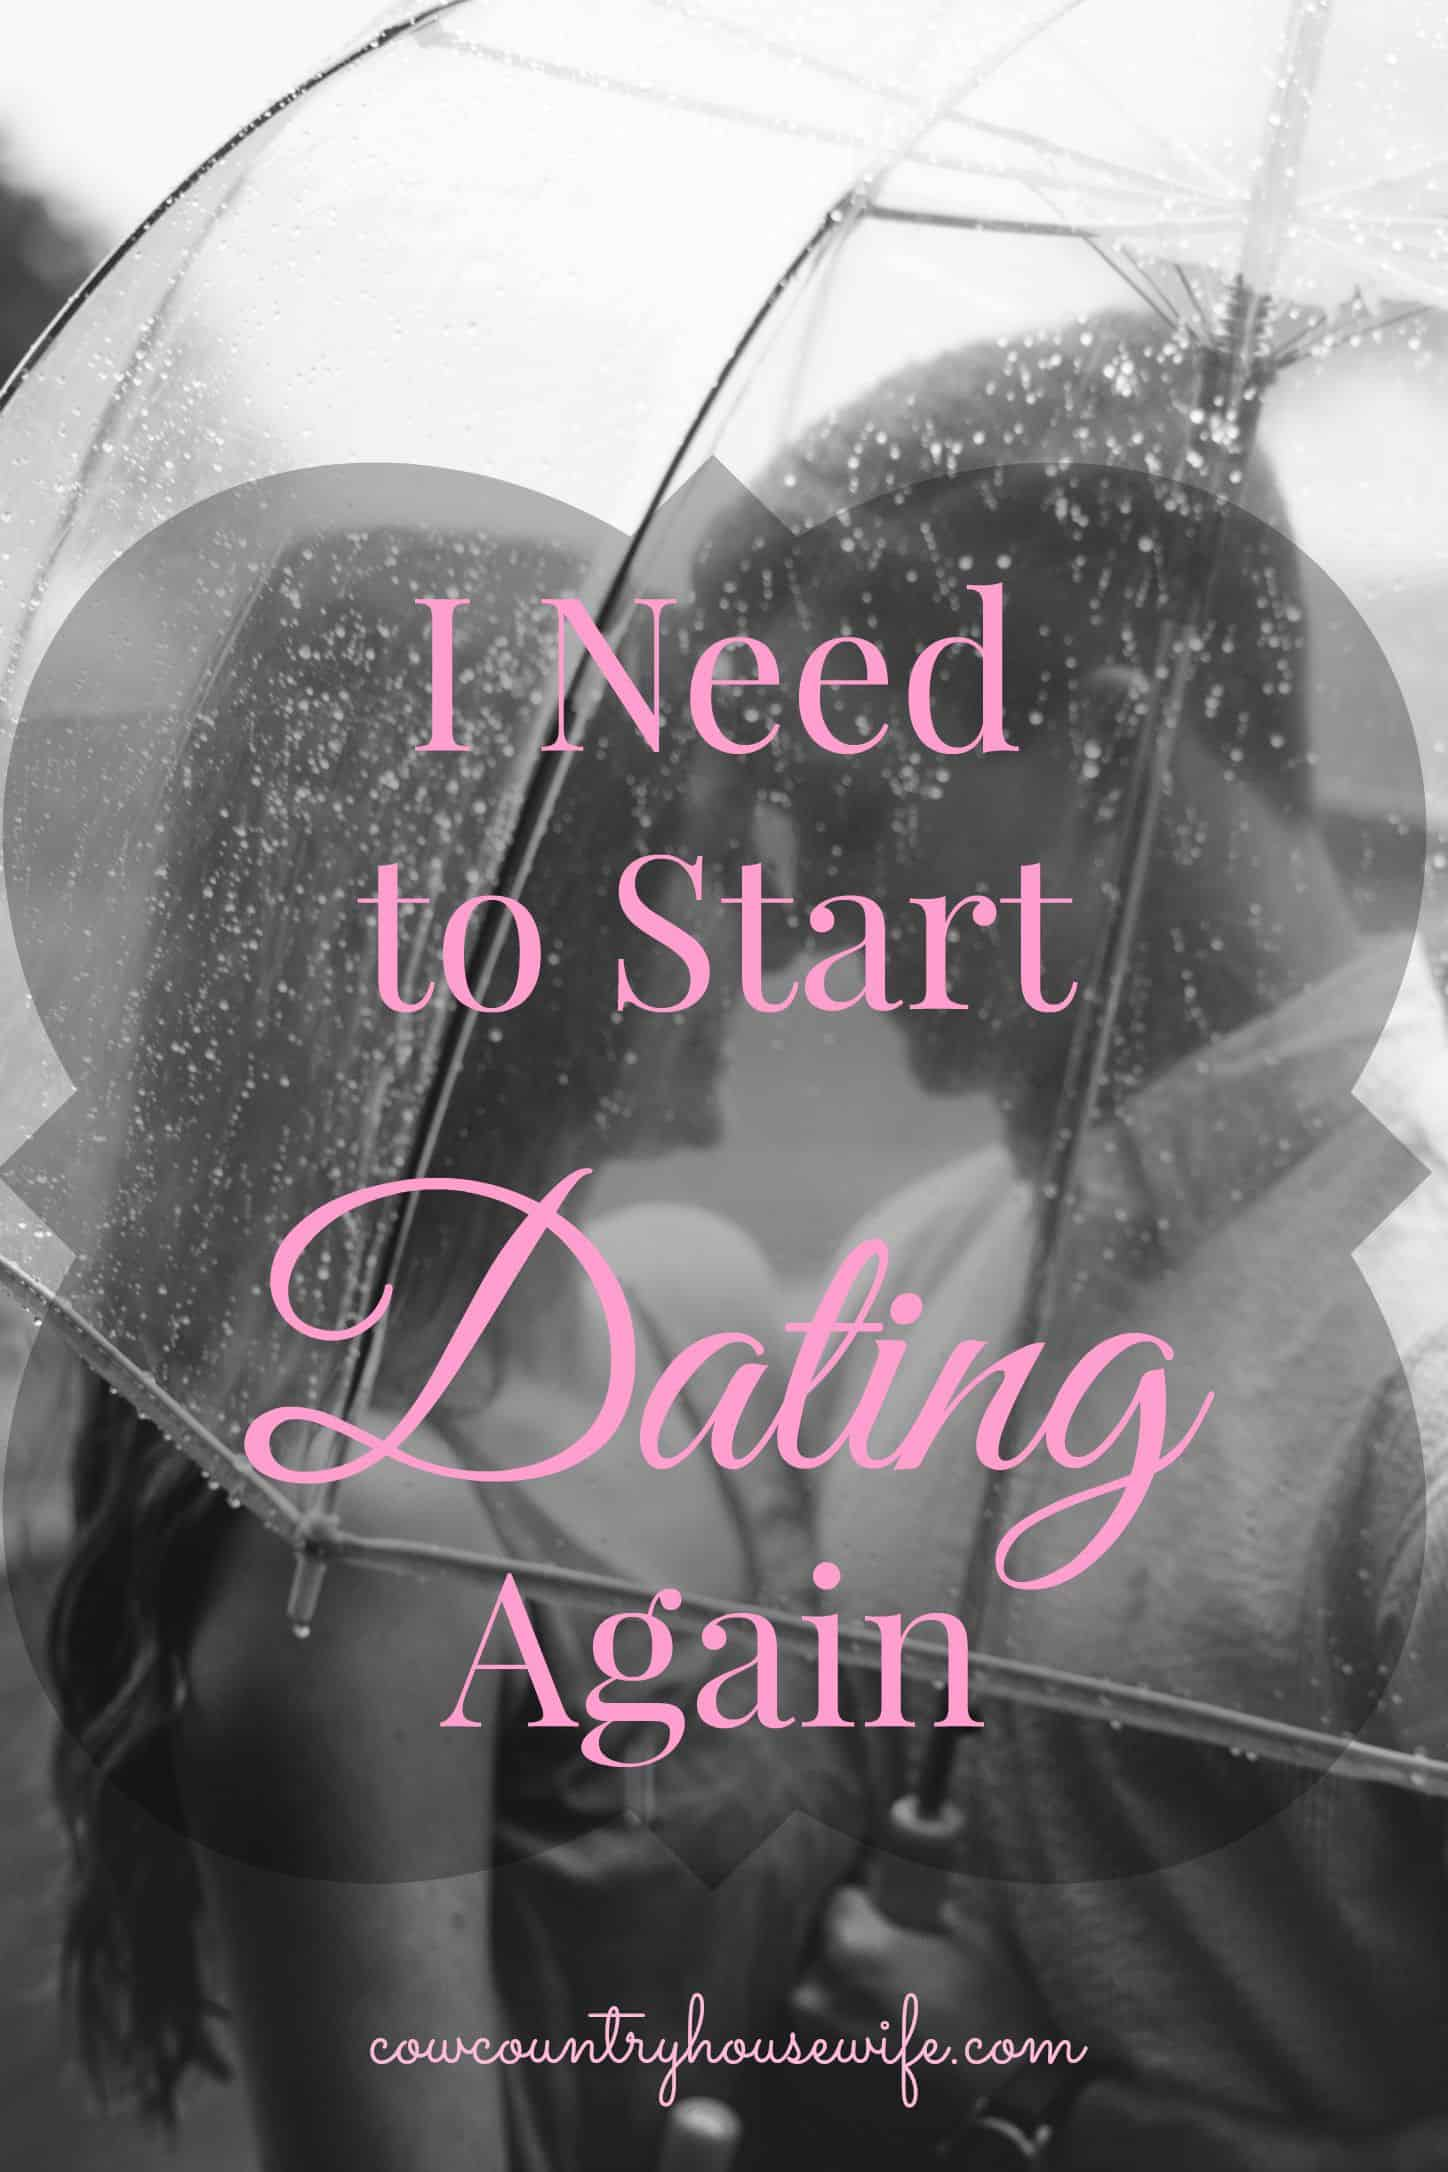 How soon can i start dating again